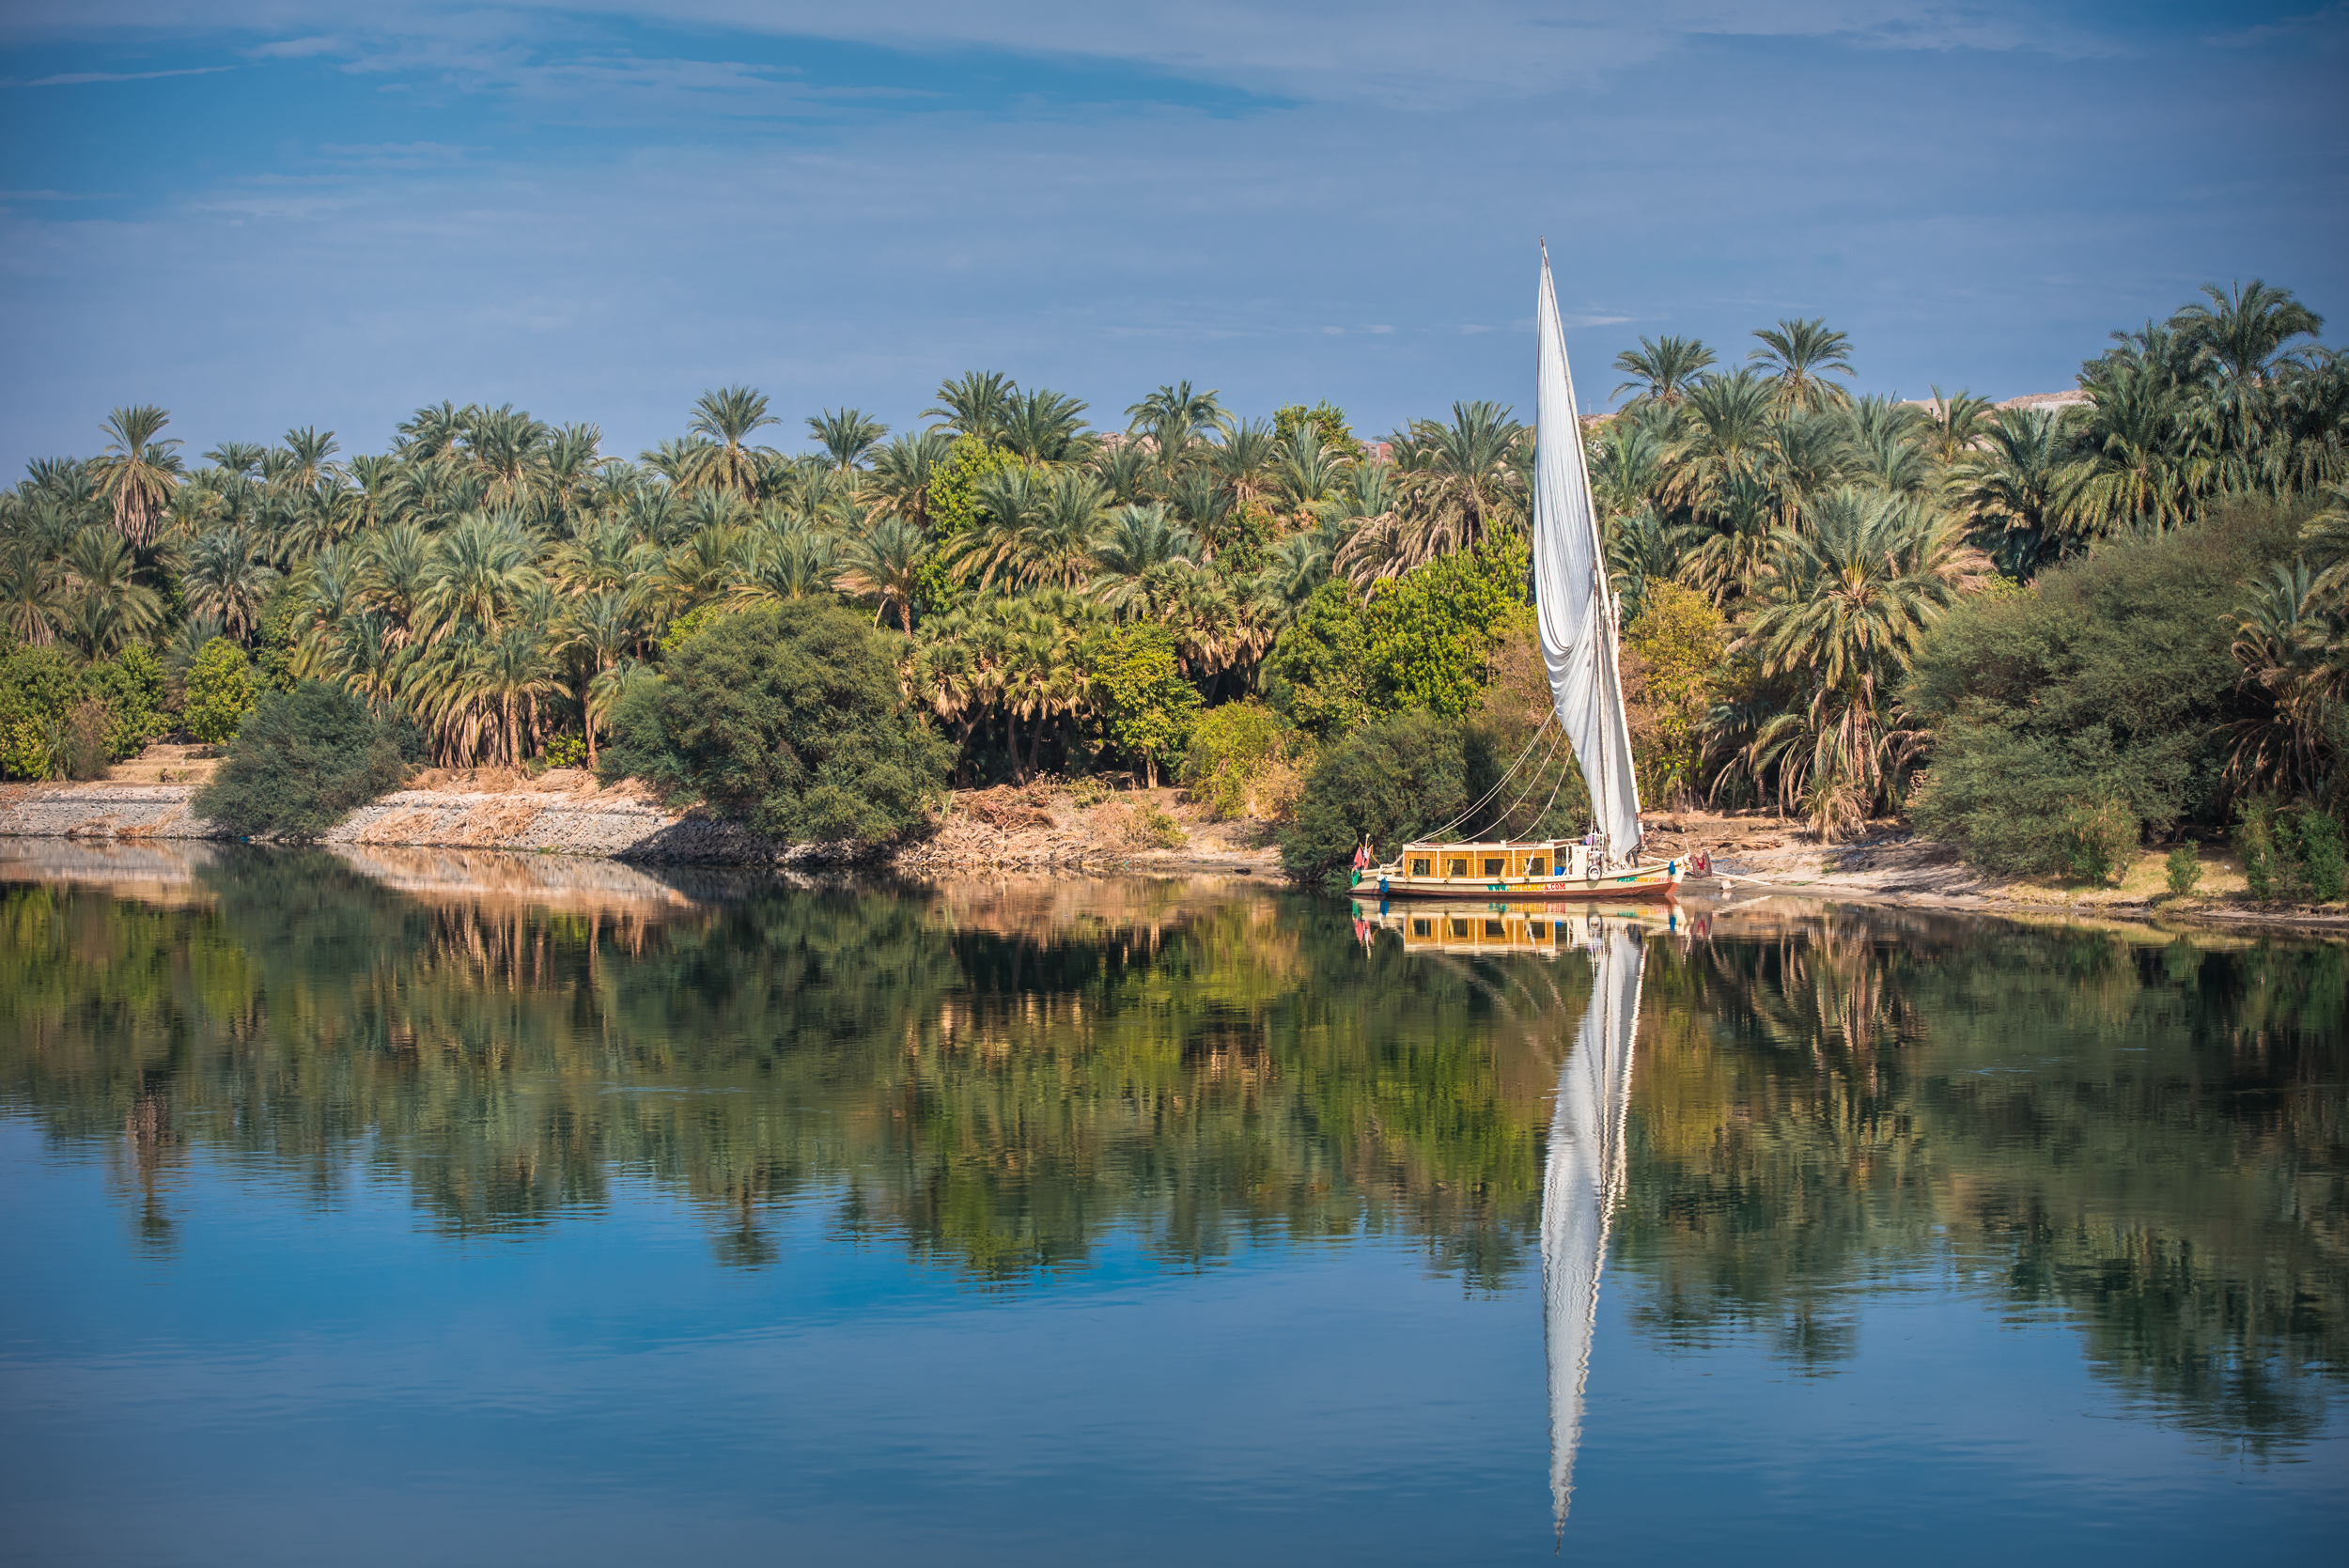 Egypt_Capturecraft-Richard Luu Photo-15.jpg